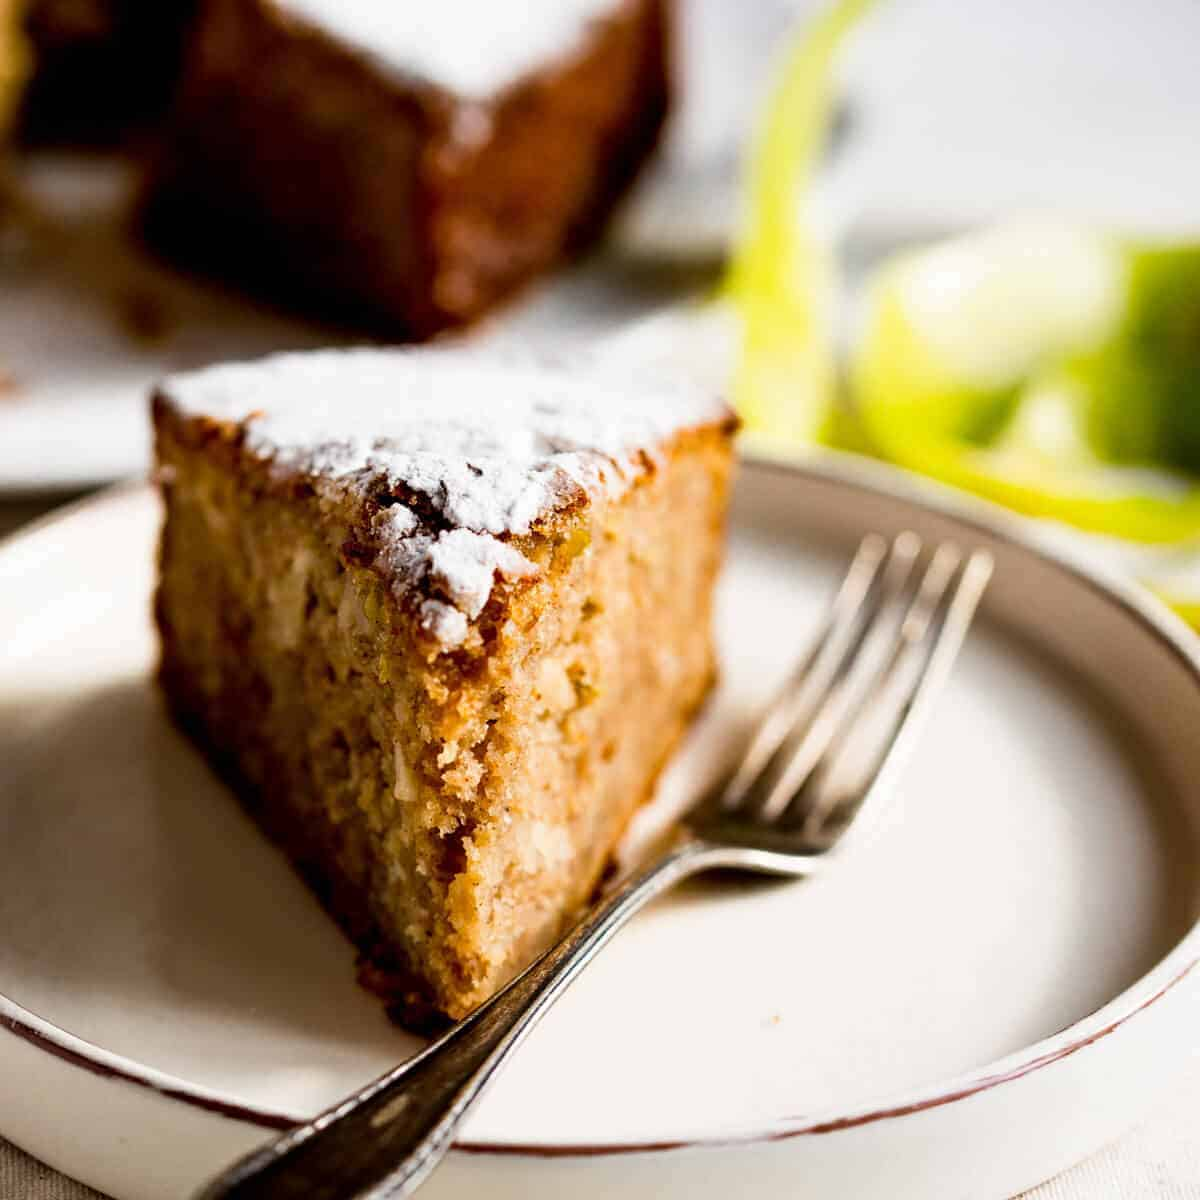 slice of spiced apple cake on a plate with vintage fork